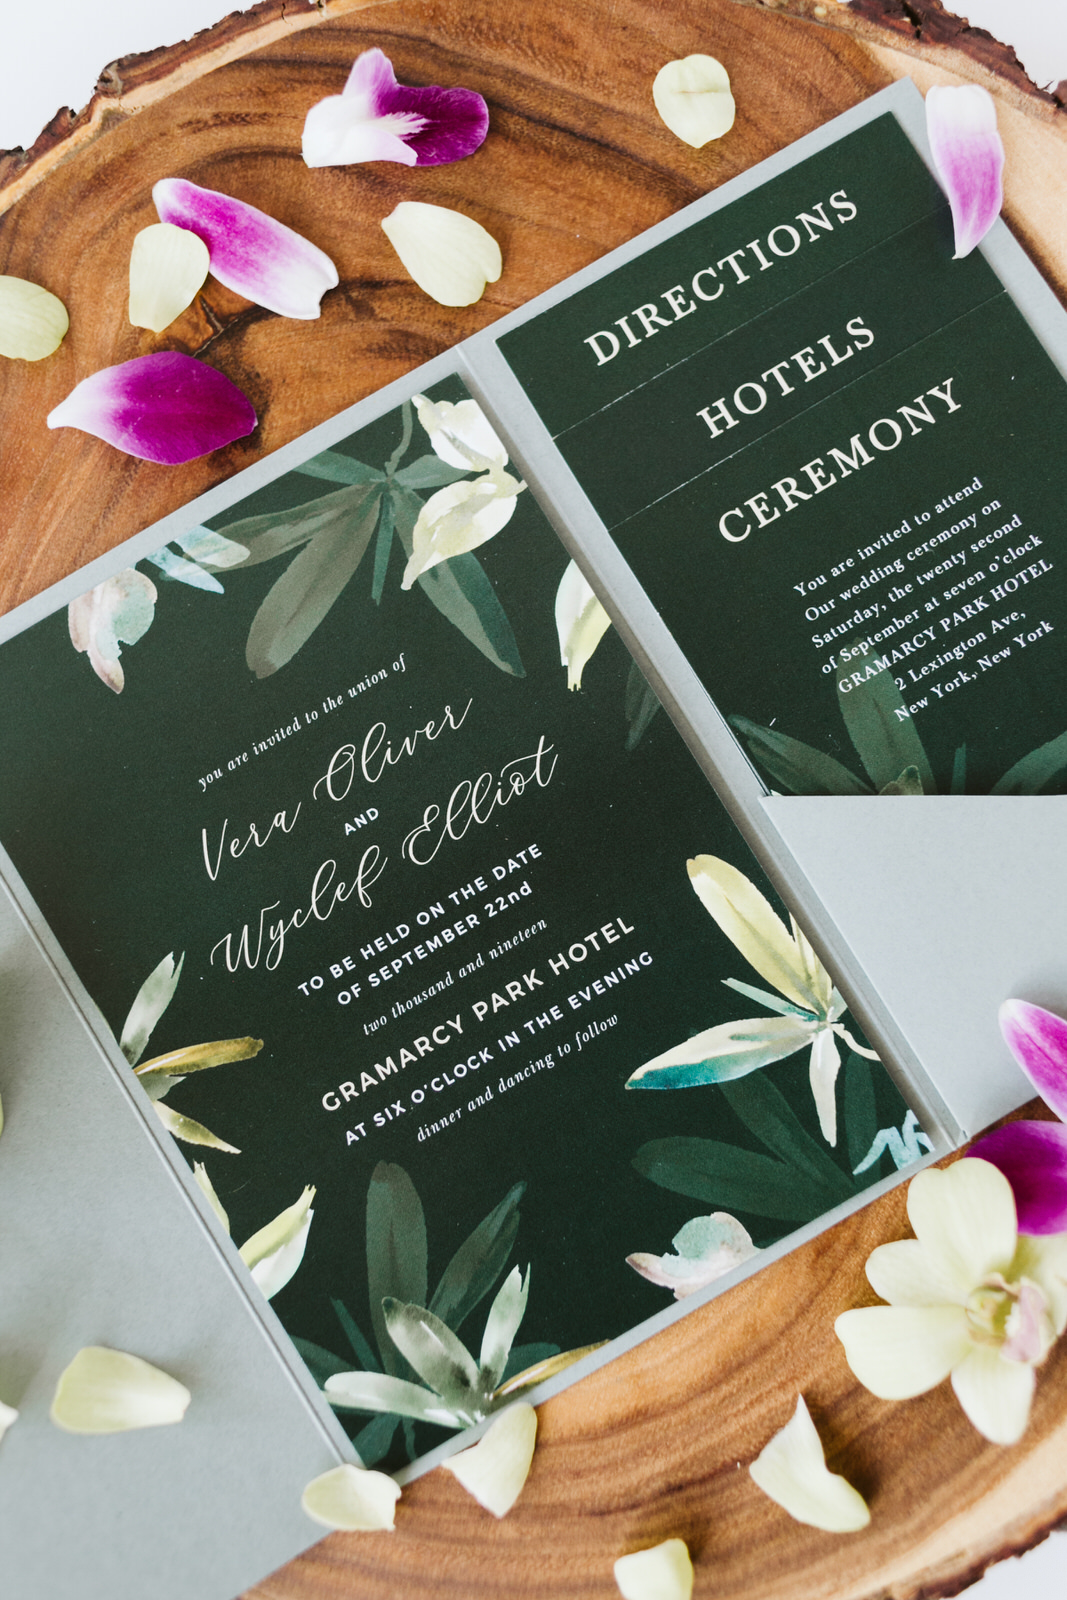 Wedding Stationary Hawaii orchid petals Wooden Basic invite Block directions Ceremony